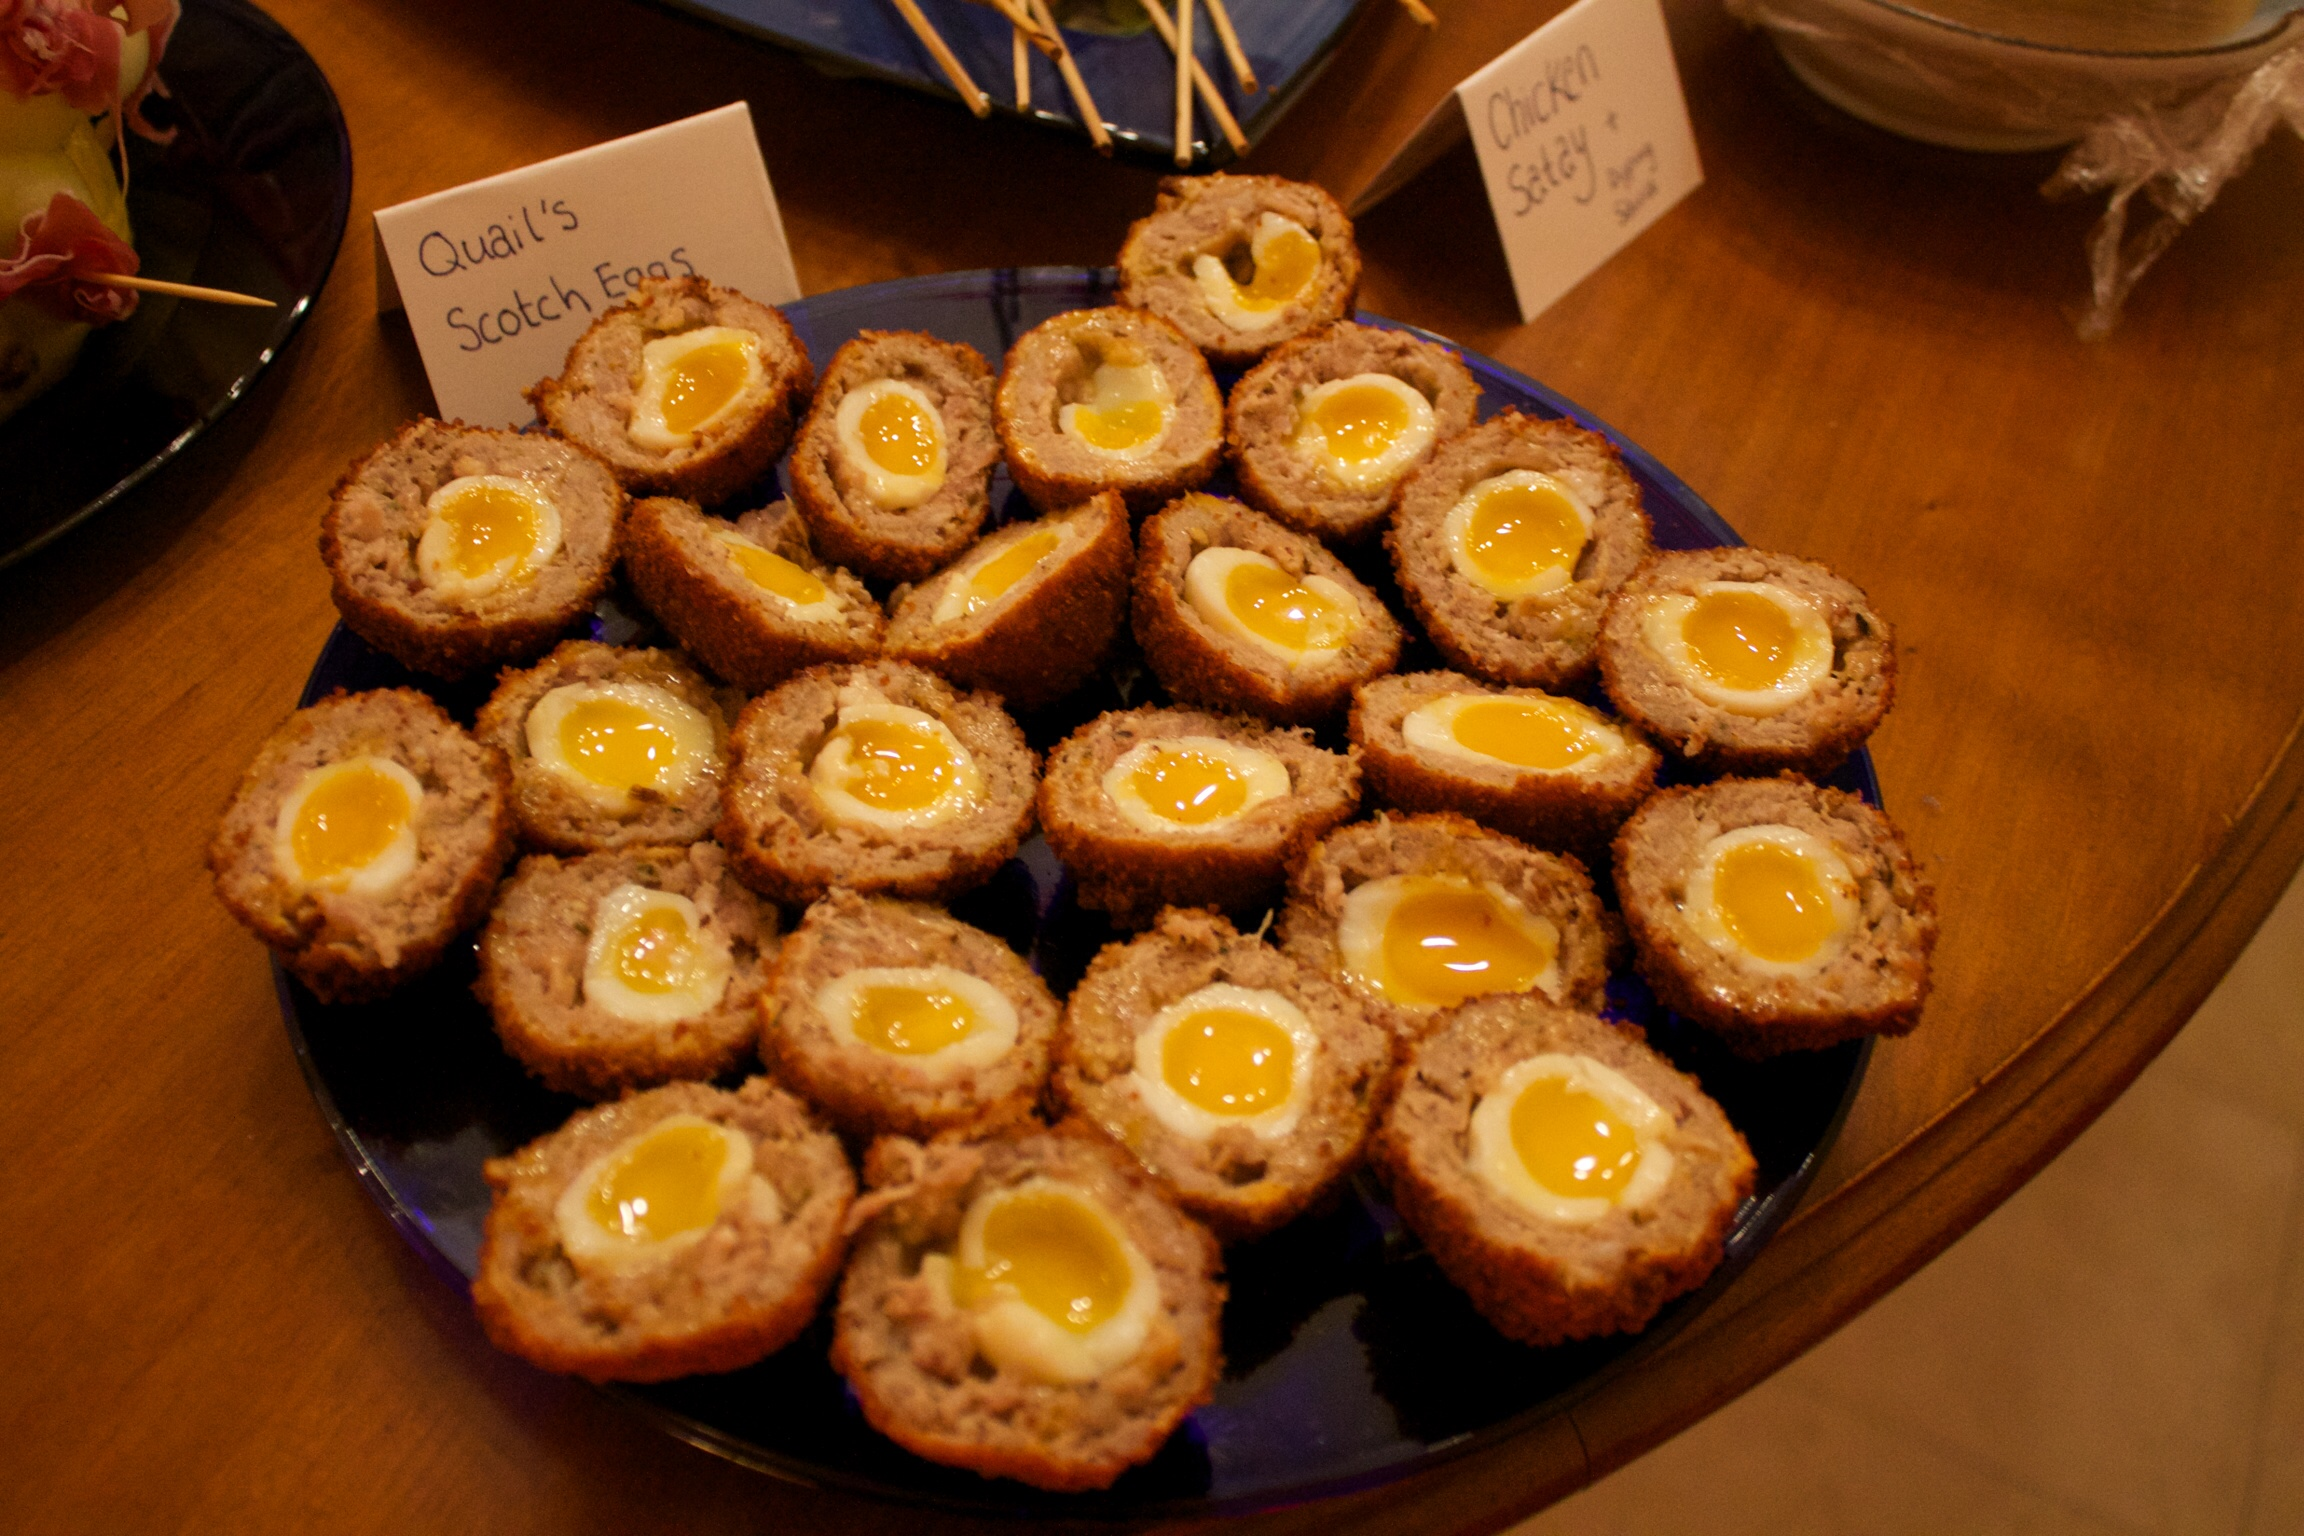 Naught Christmas finger food: Quails egg scotch eggs